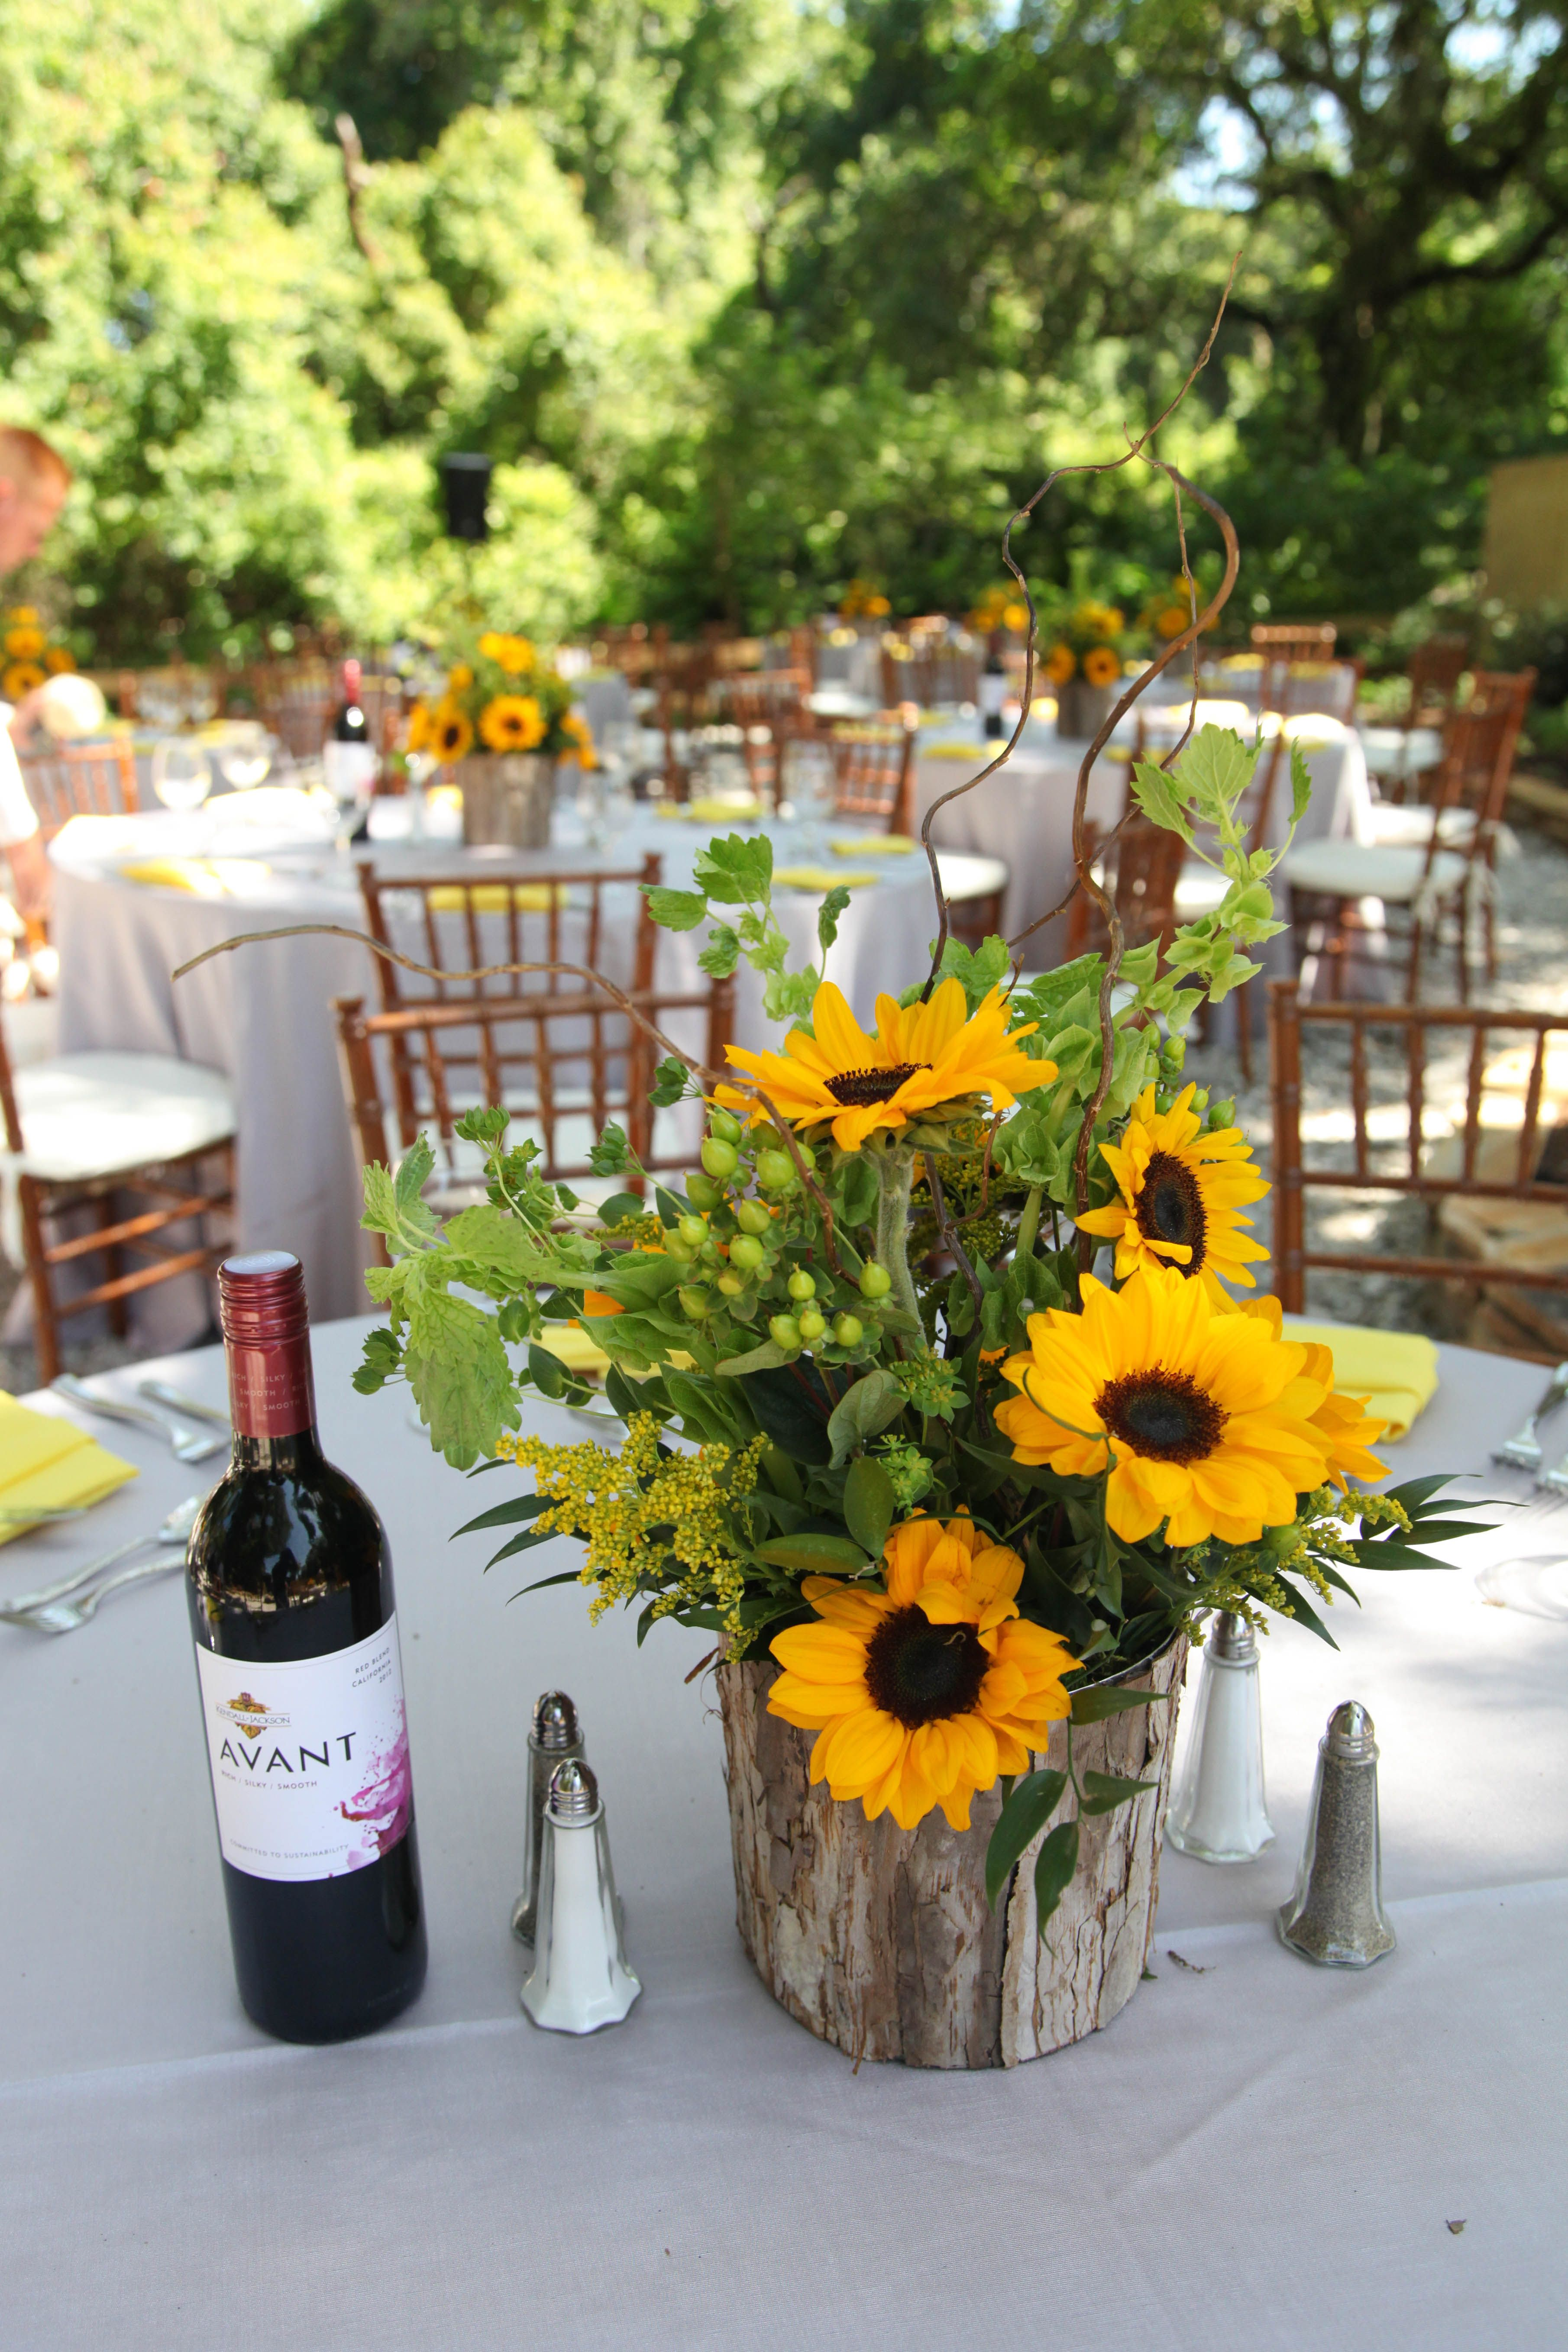 Sunflower Centerpieces With Wooden Bases Sunflower Themed Wedding Sunflower Centerpieces Sunflower Wedding Decorations